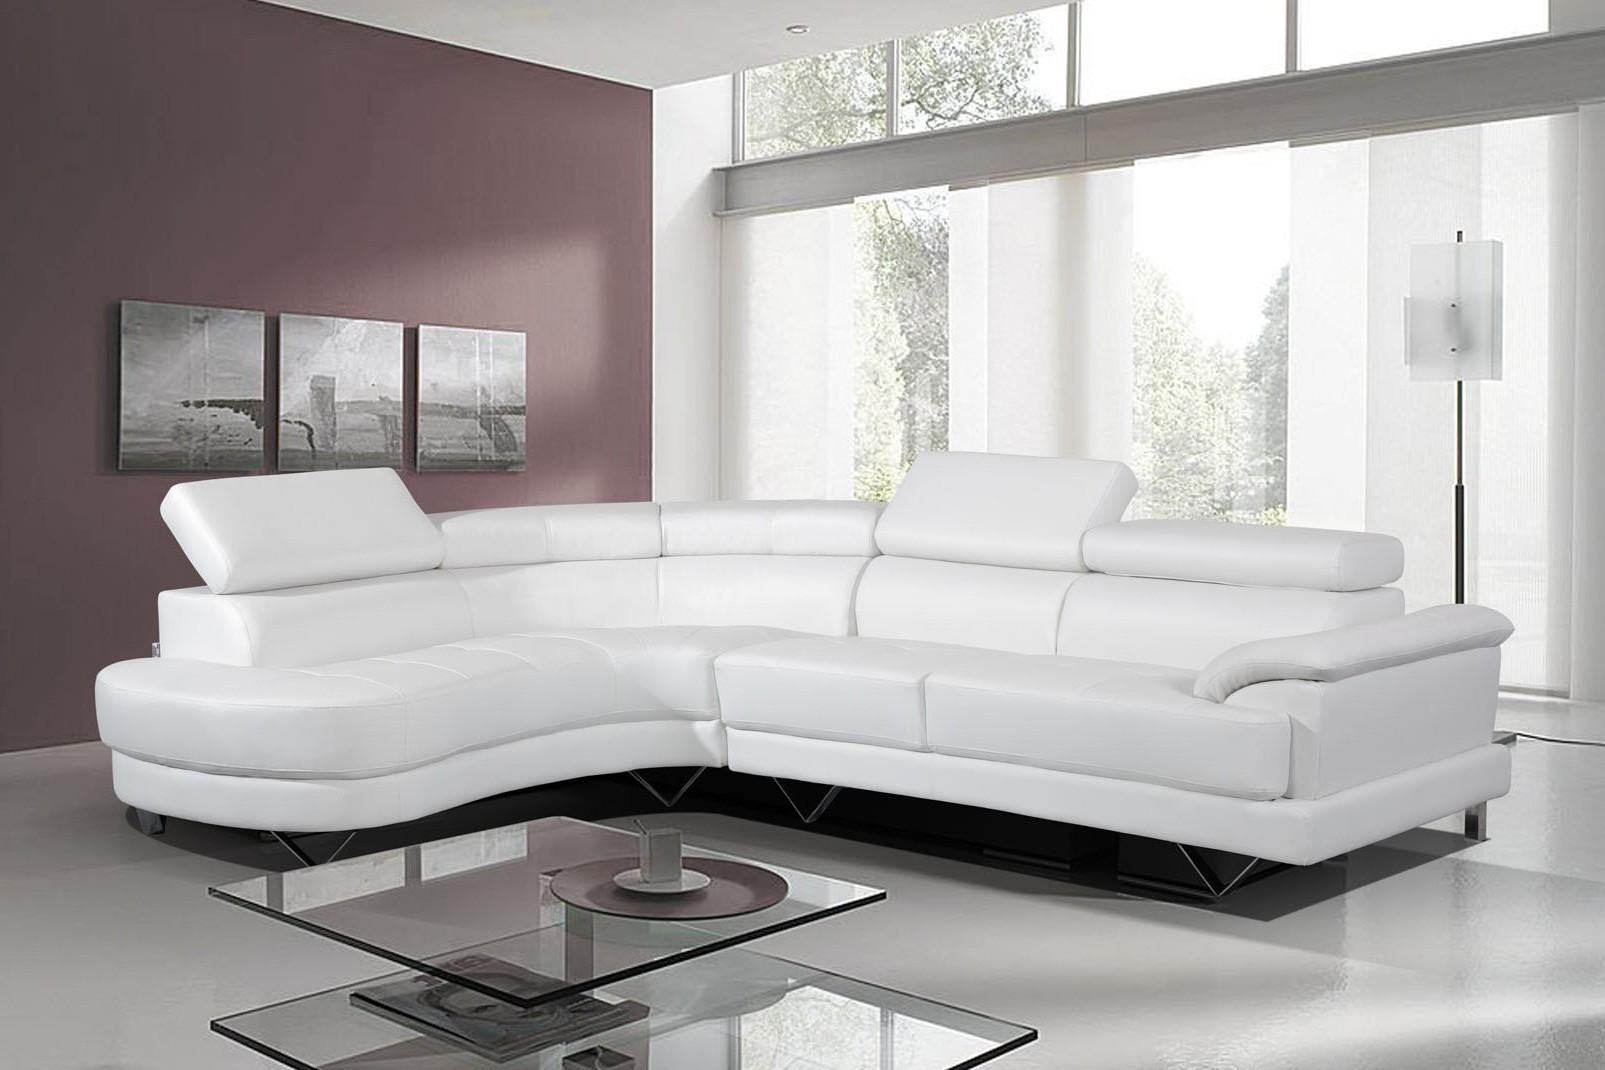 Leather Corner Sofas Elegant Home Design Intended For Corner Sofa Leather (Image 11 of 20)